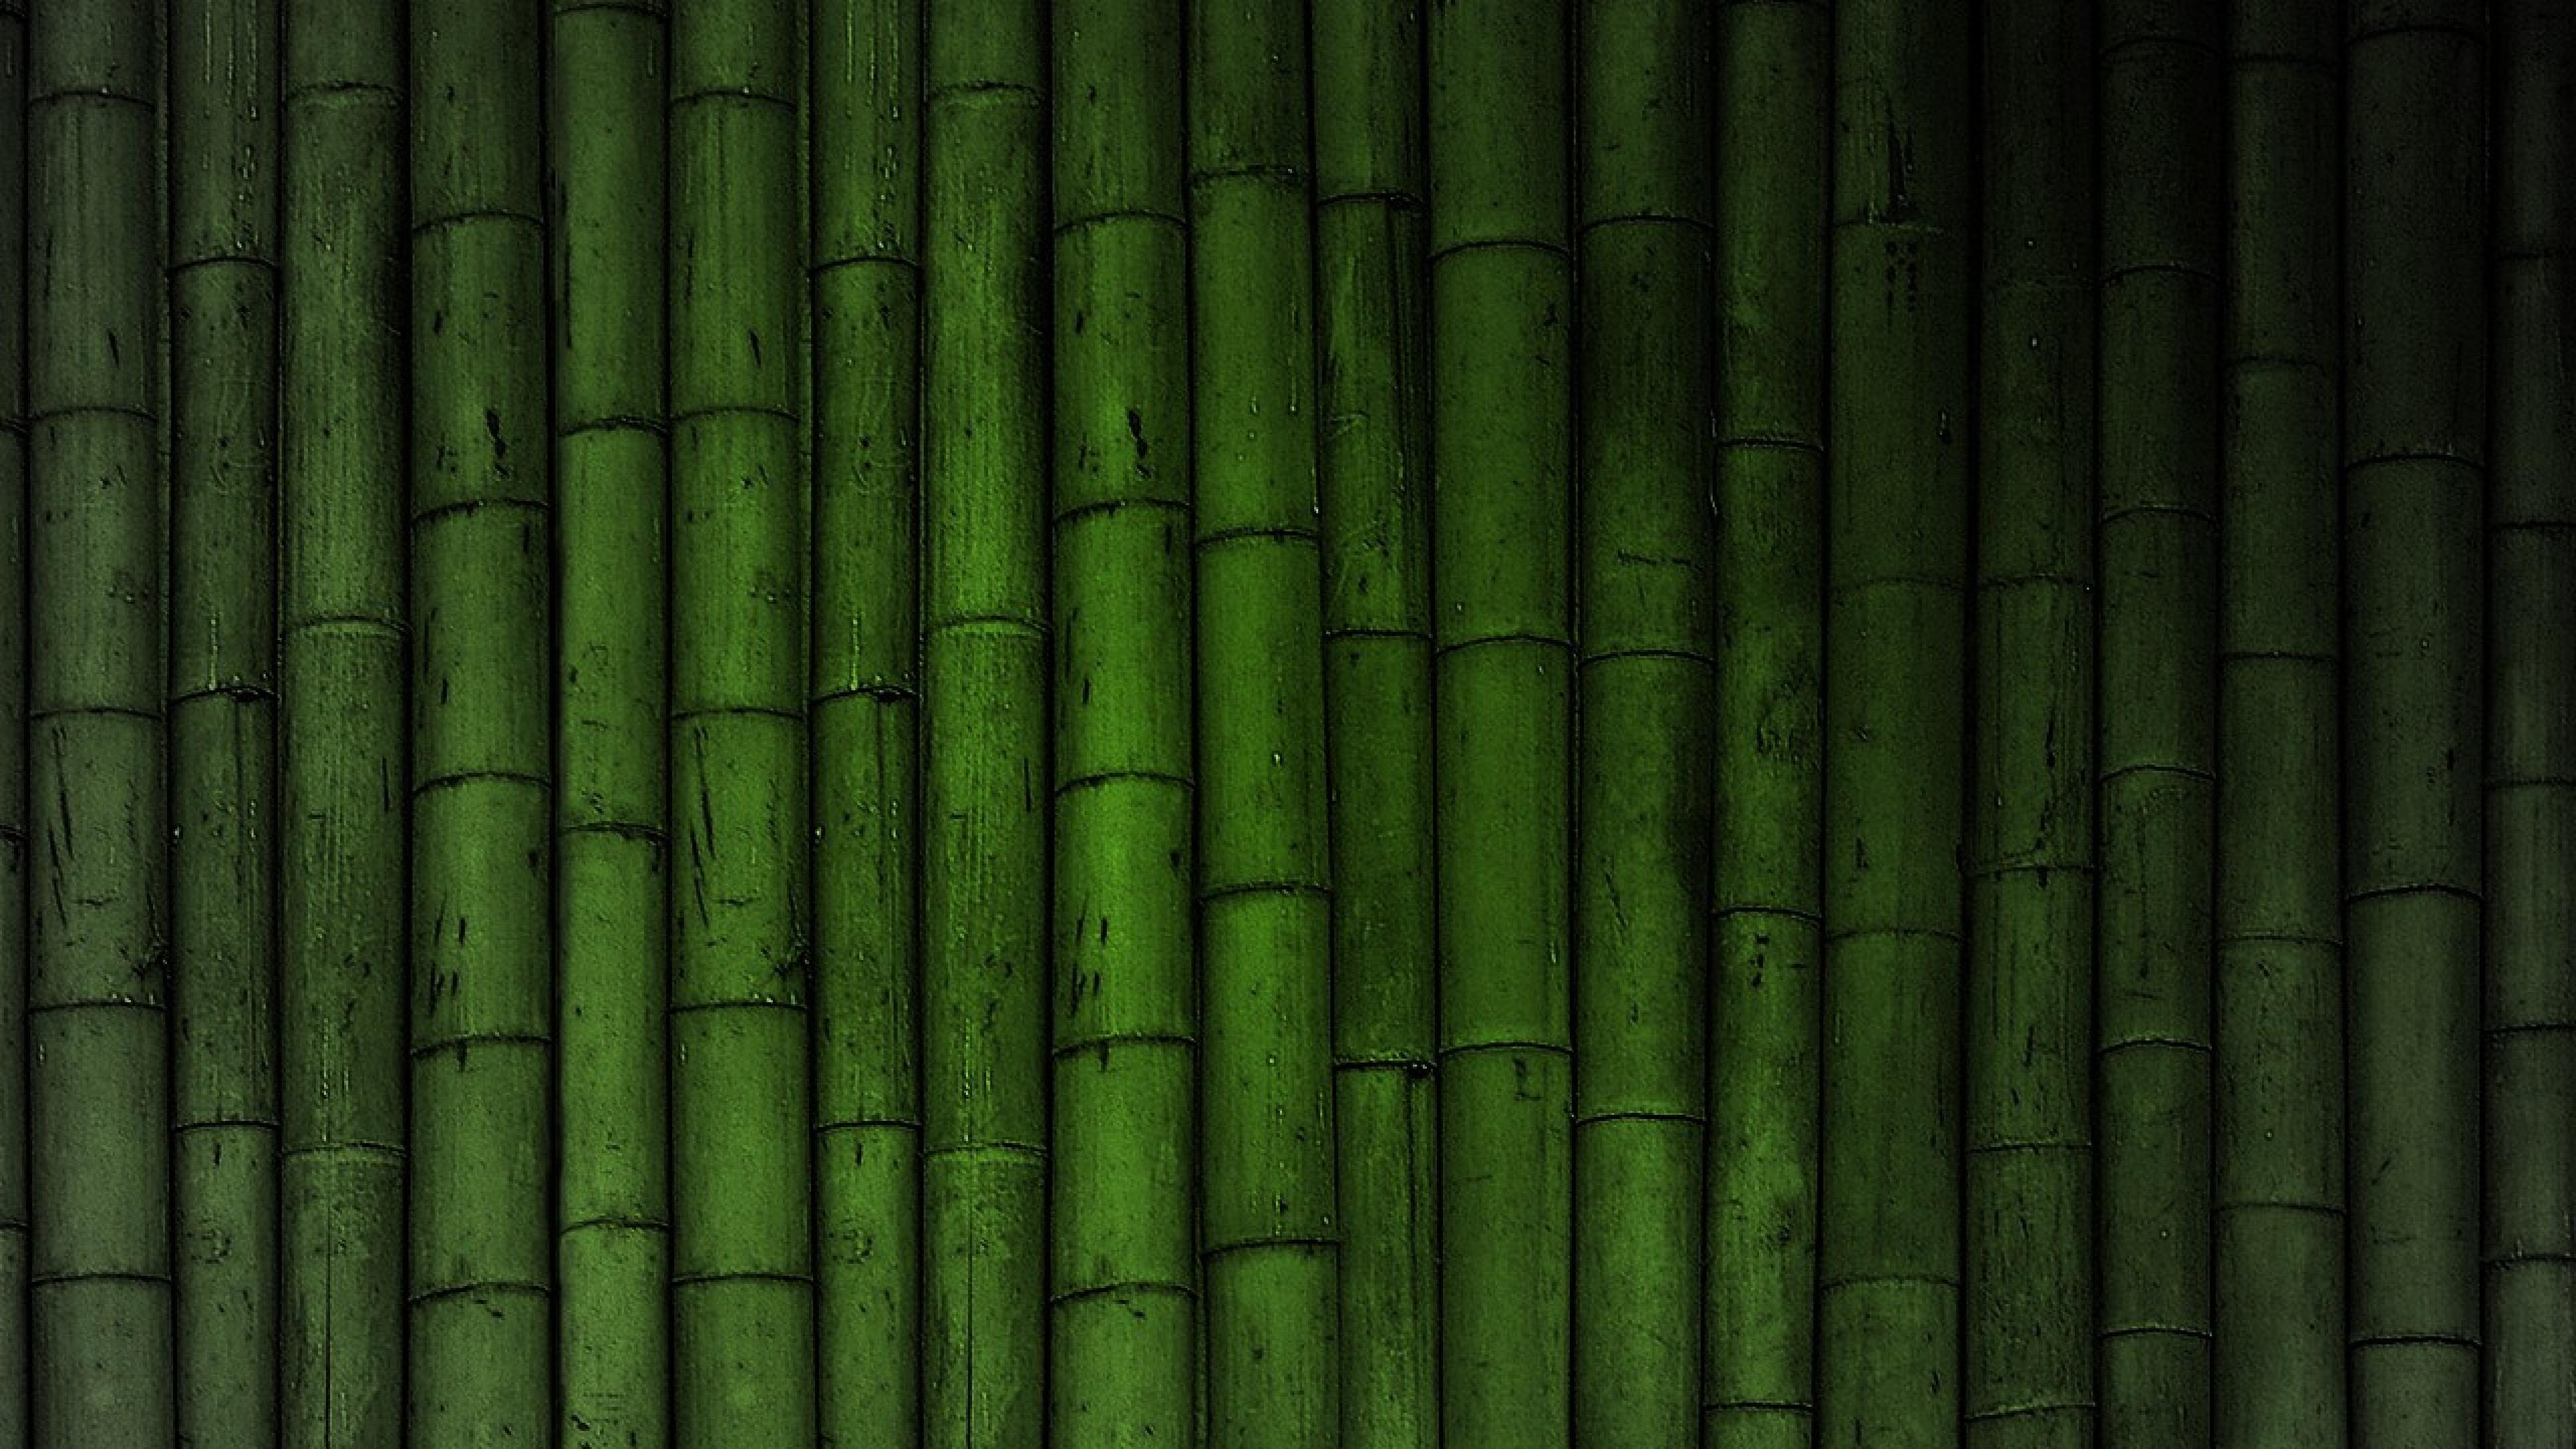 desktop-hd-bamboo-backgrounds | wallpaper.wiki